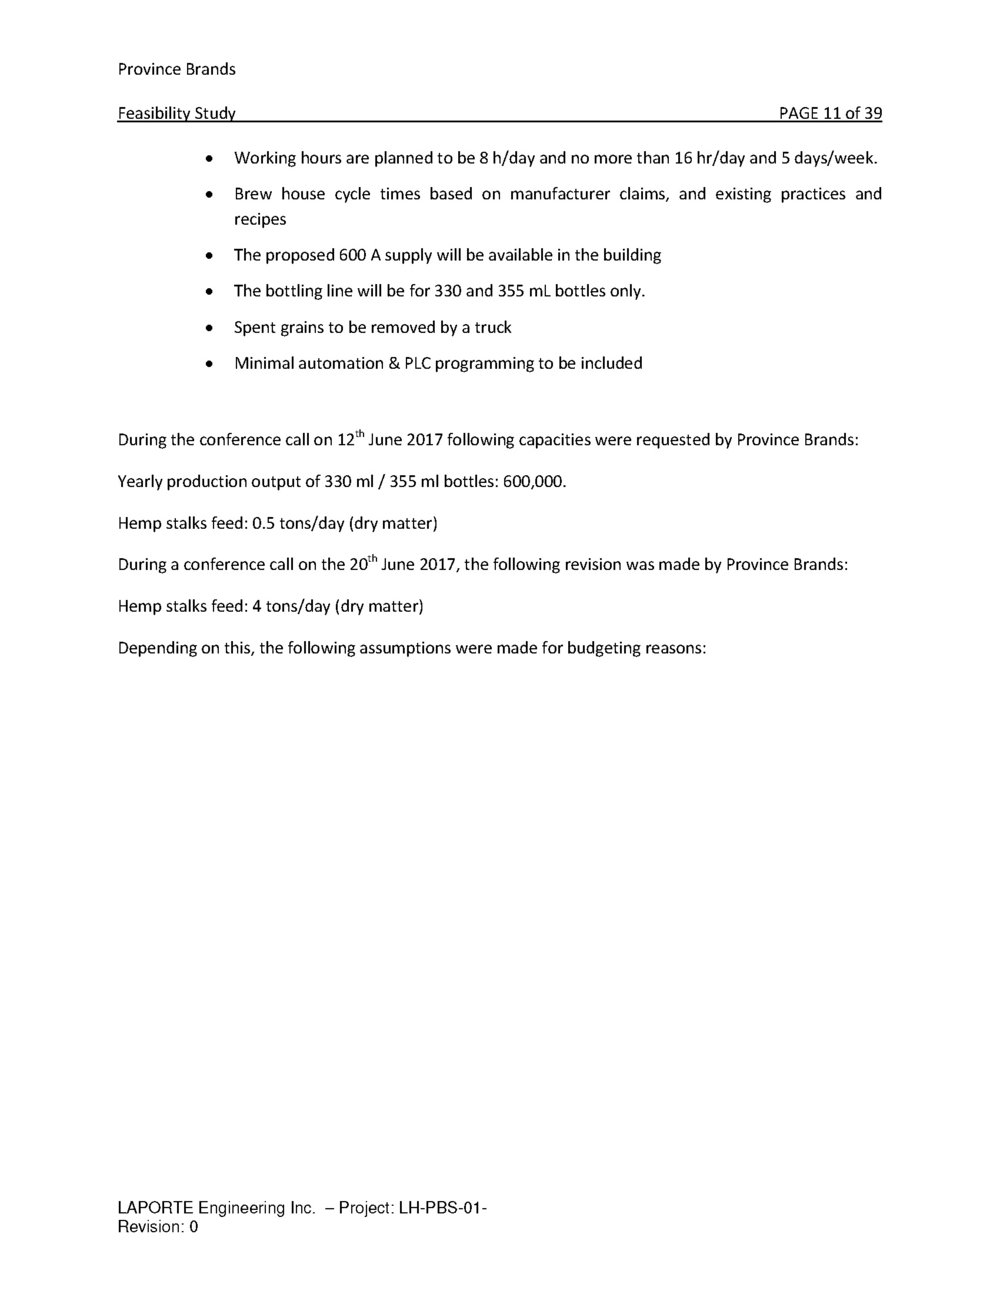 LH-PBS-01_Feasibility Study Report_01_Page_11.jpg